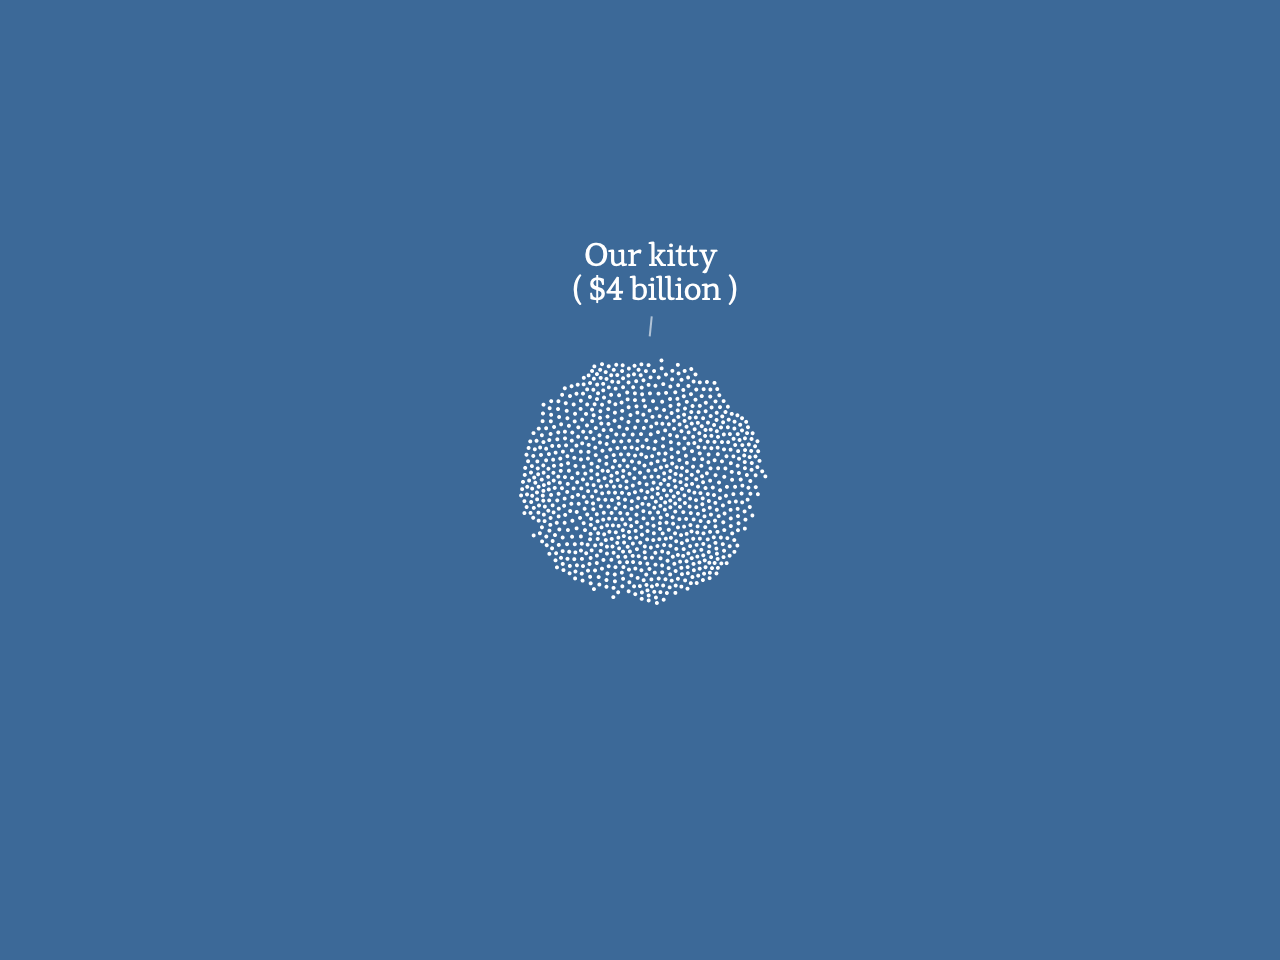 A mass of dots, each dot representing $4 million, that represents the $4 billion we'd spend a year on climate change.